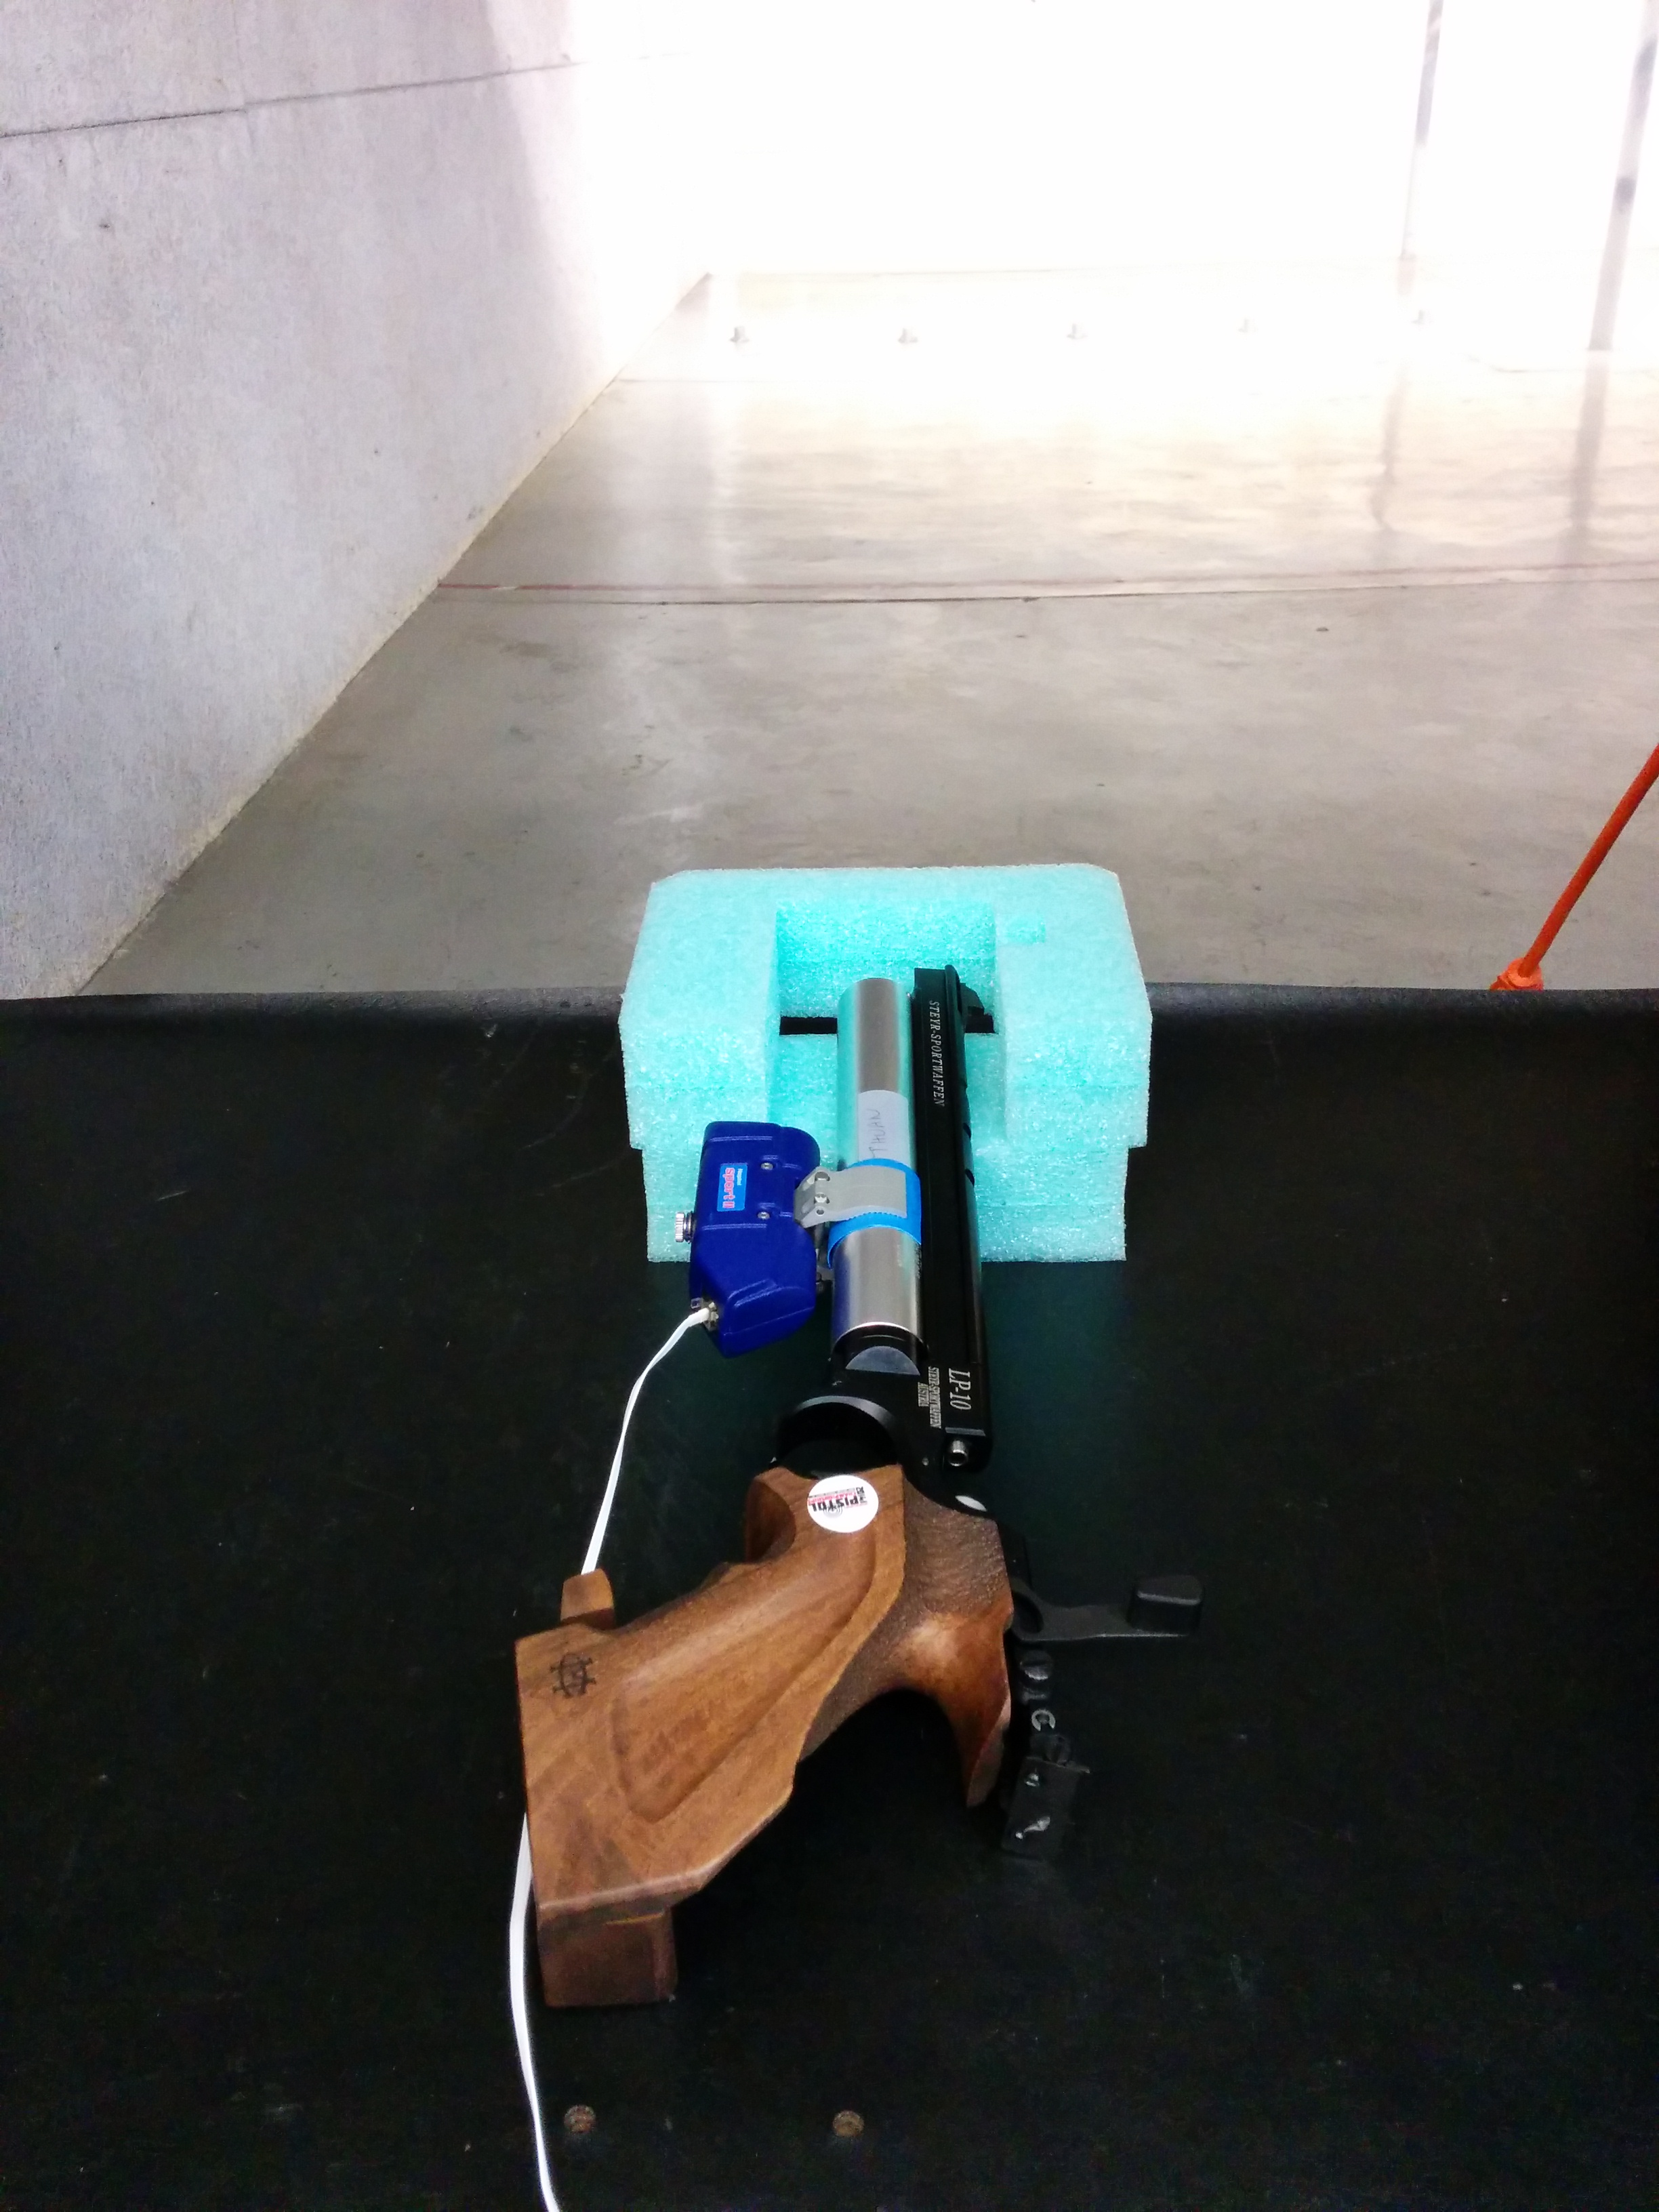 The air pistol was attached with an optoelectronic unit that was connected to a laptop to record position data.